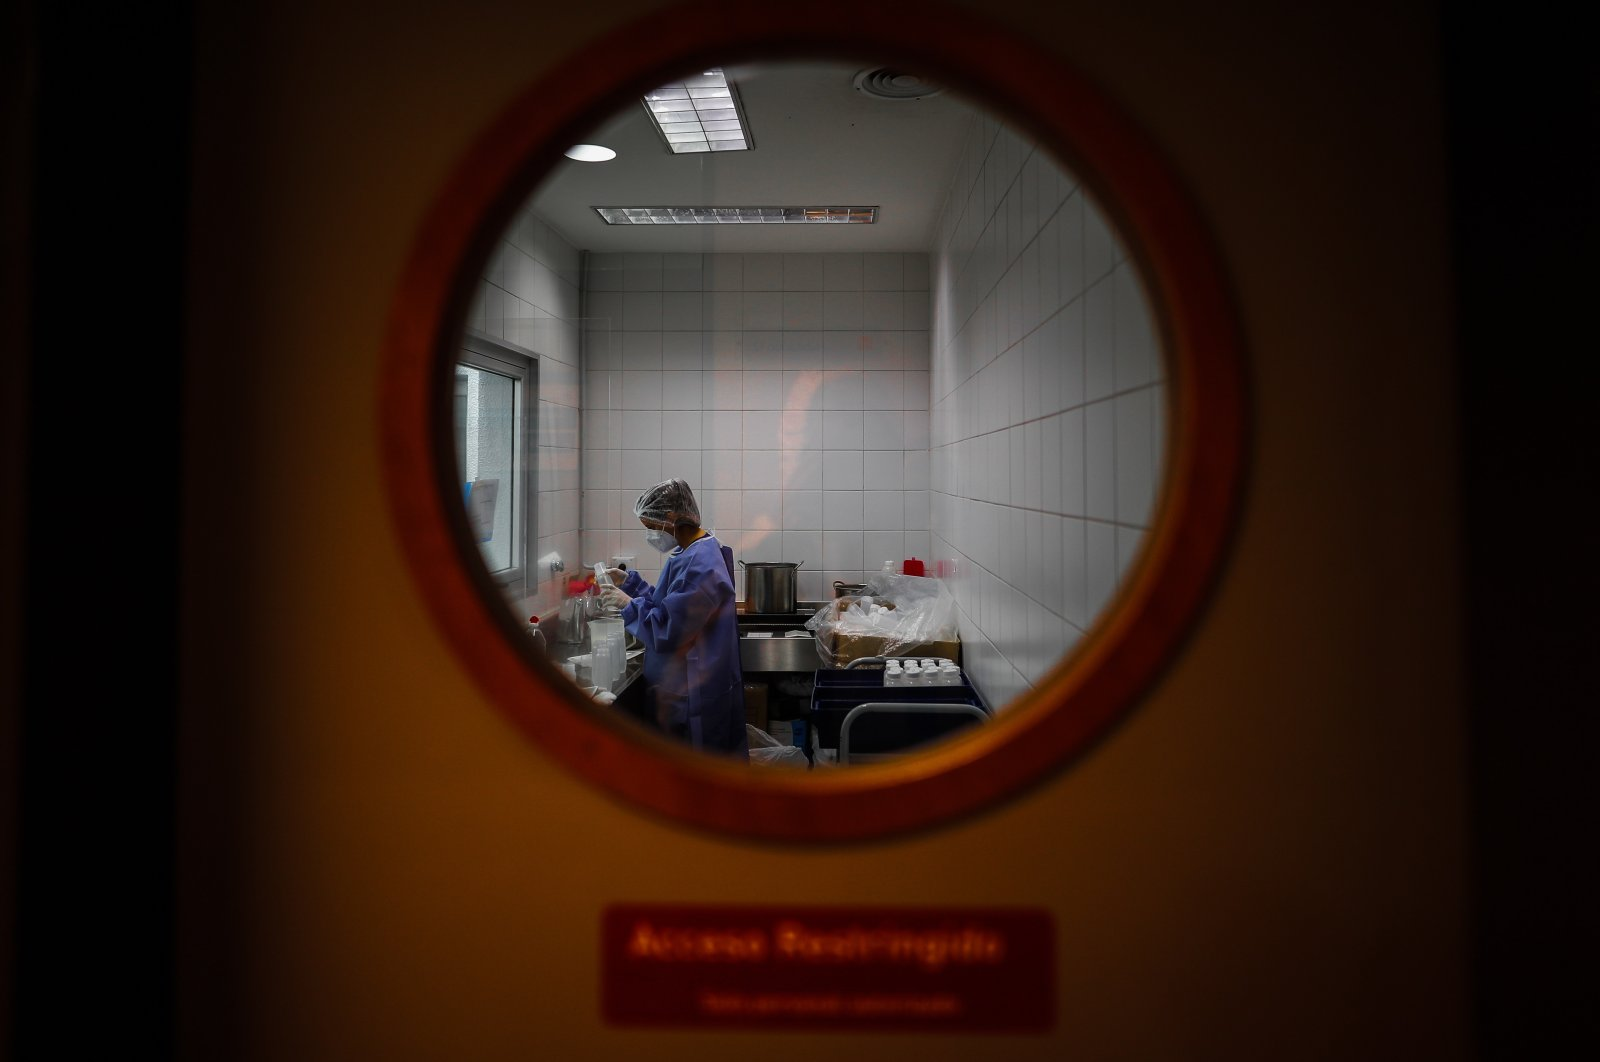 A doctor prepares before checking on COVID-19 patients, in a hospital in the Province of Buenos Aires, Argentina, Sept. 6, 2020. (EPA Photo)